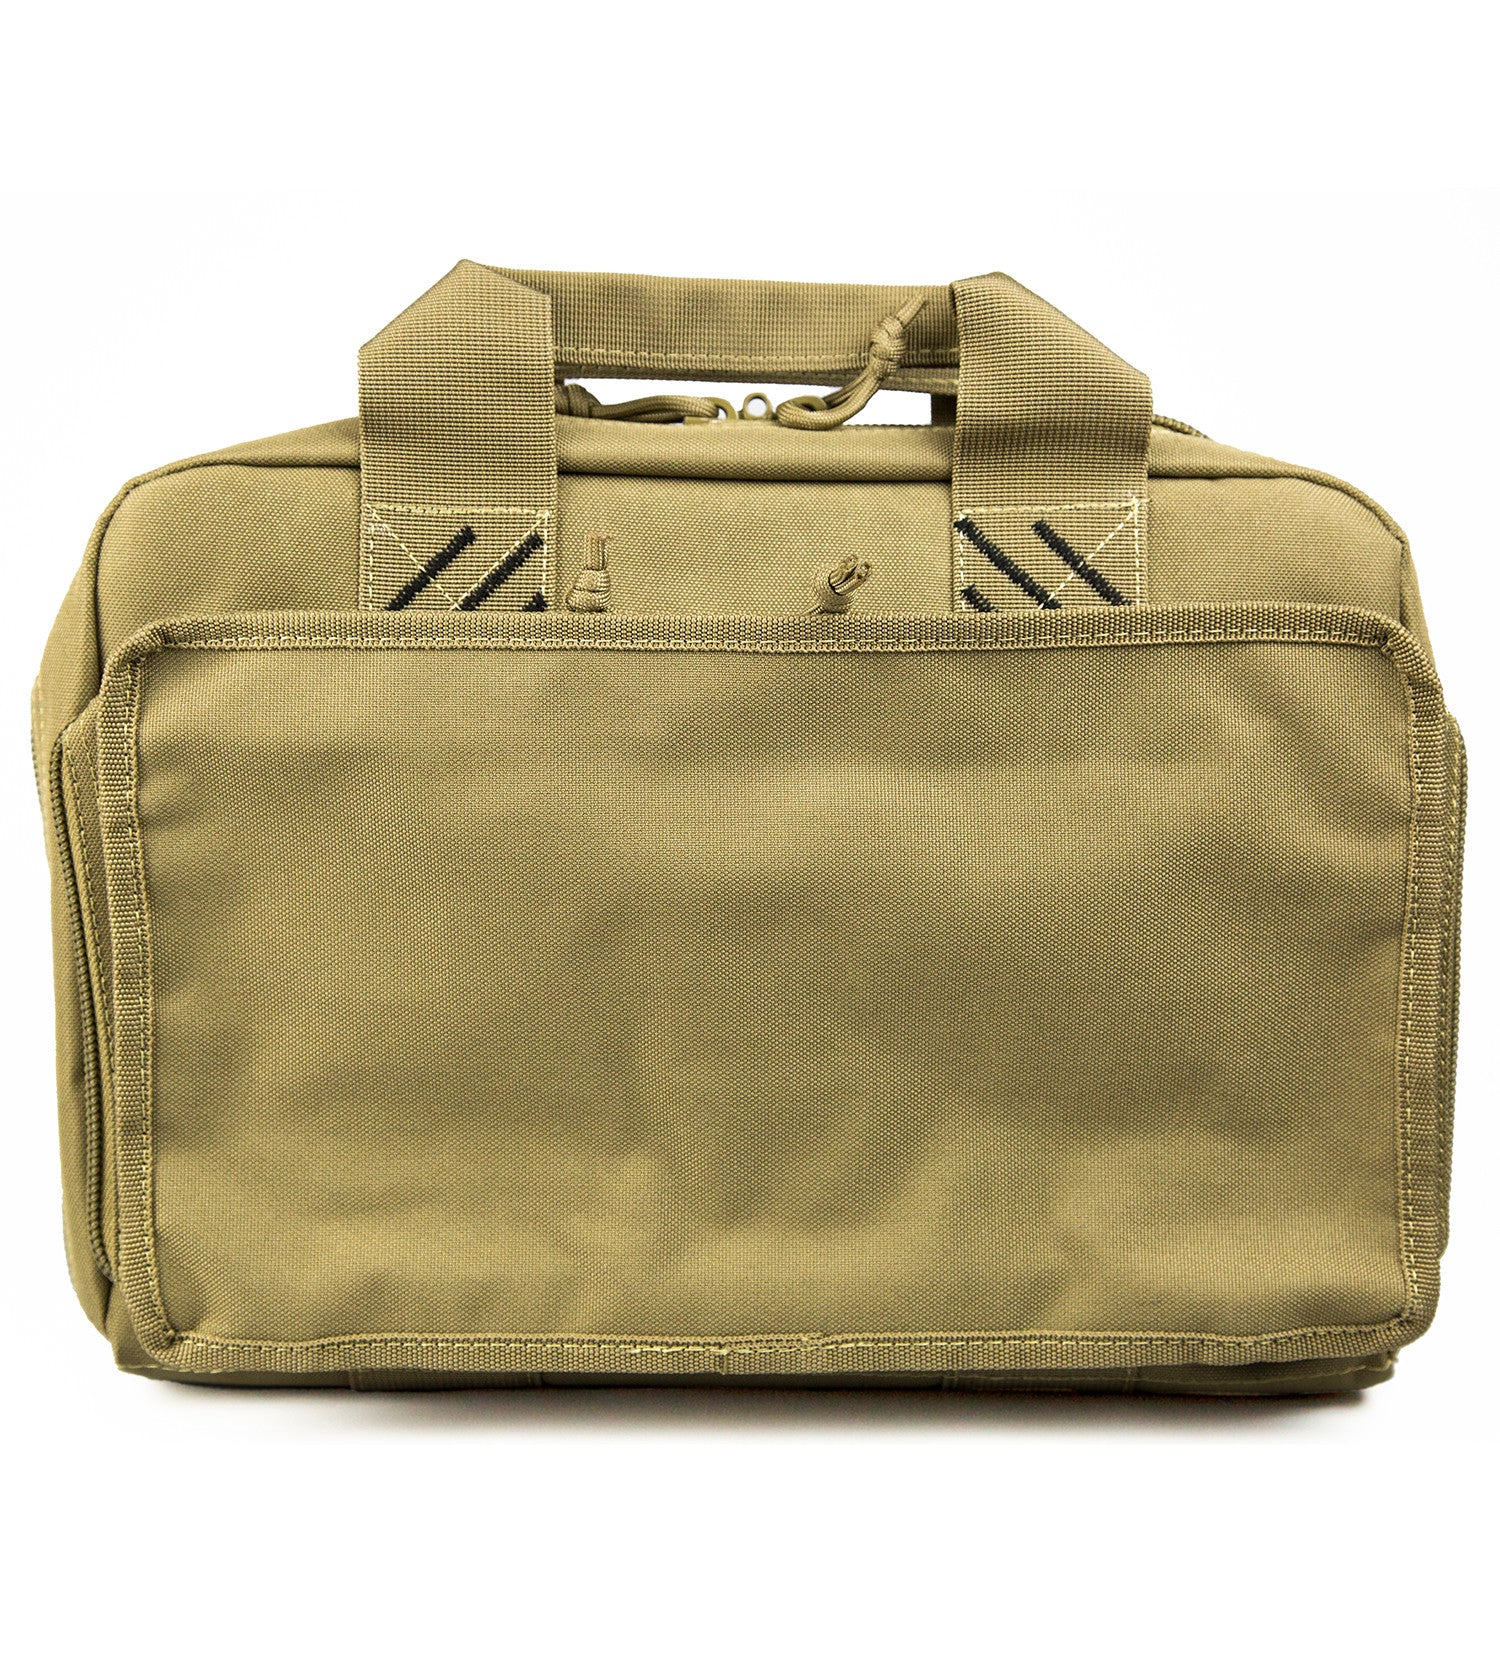 Quad Pistol Range Bag, Tan